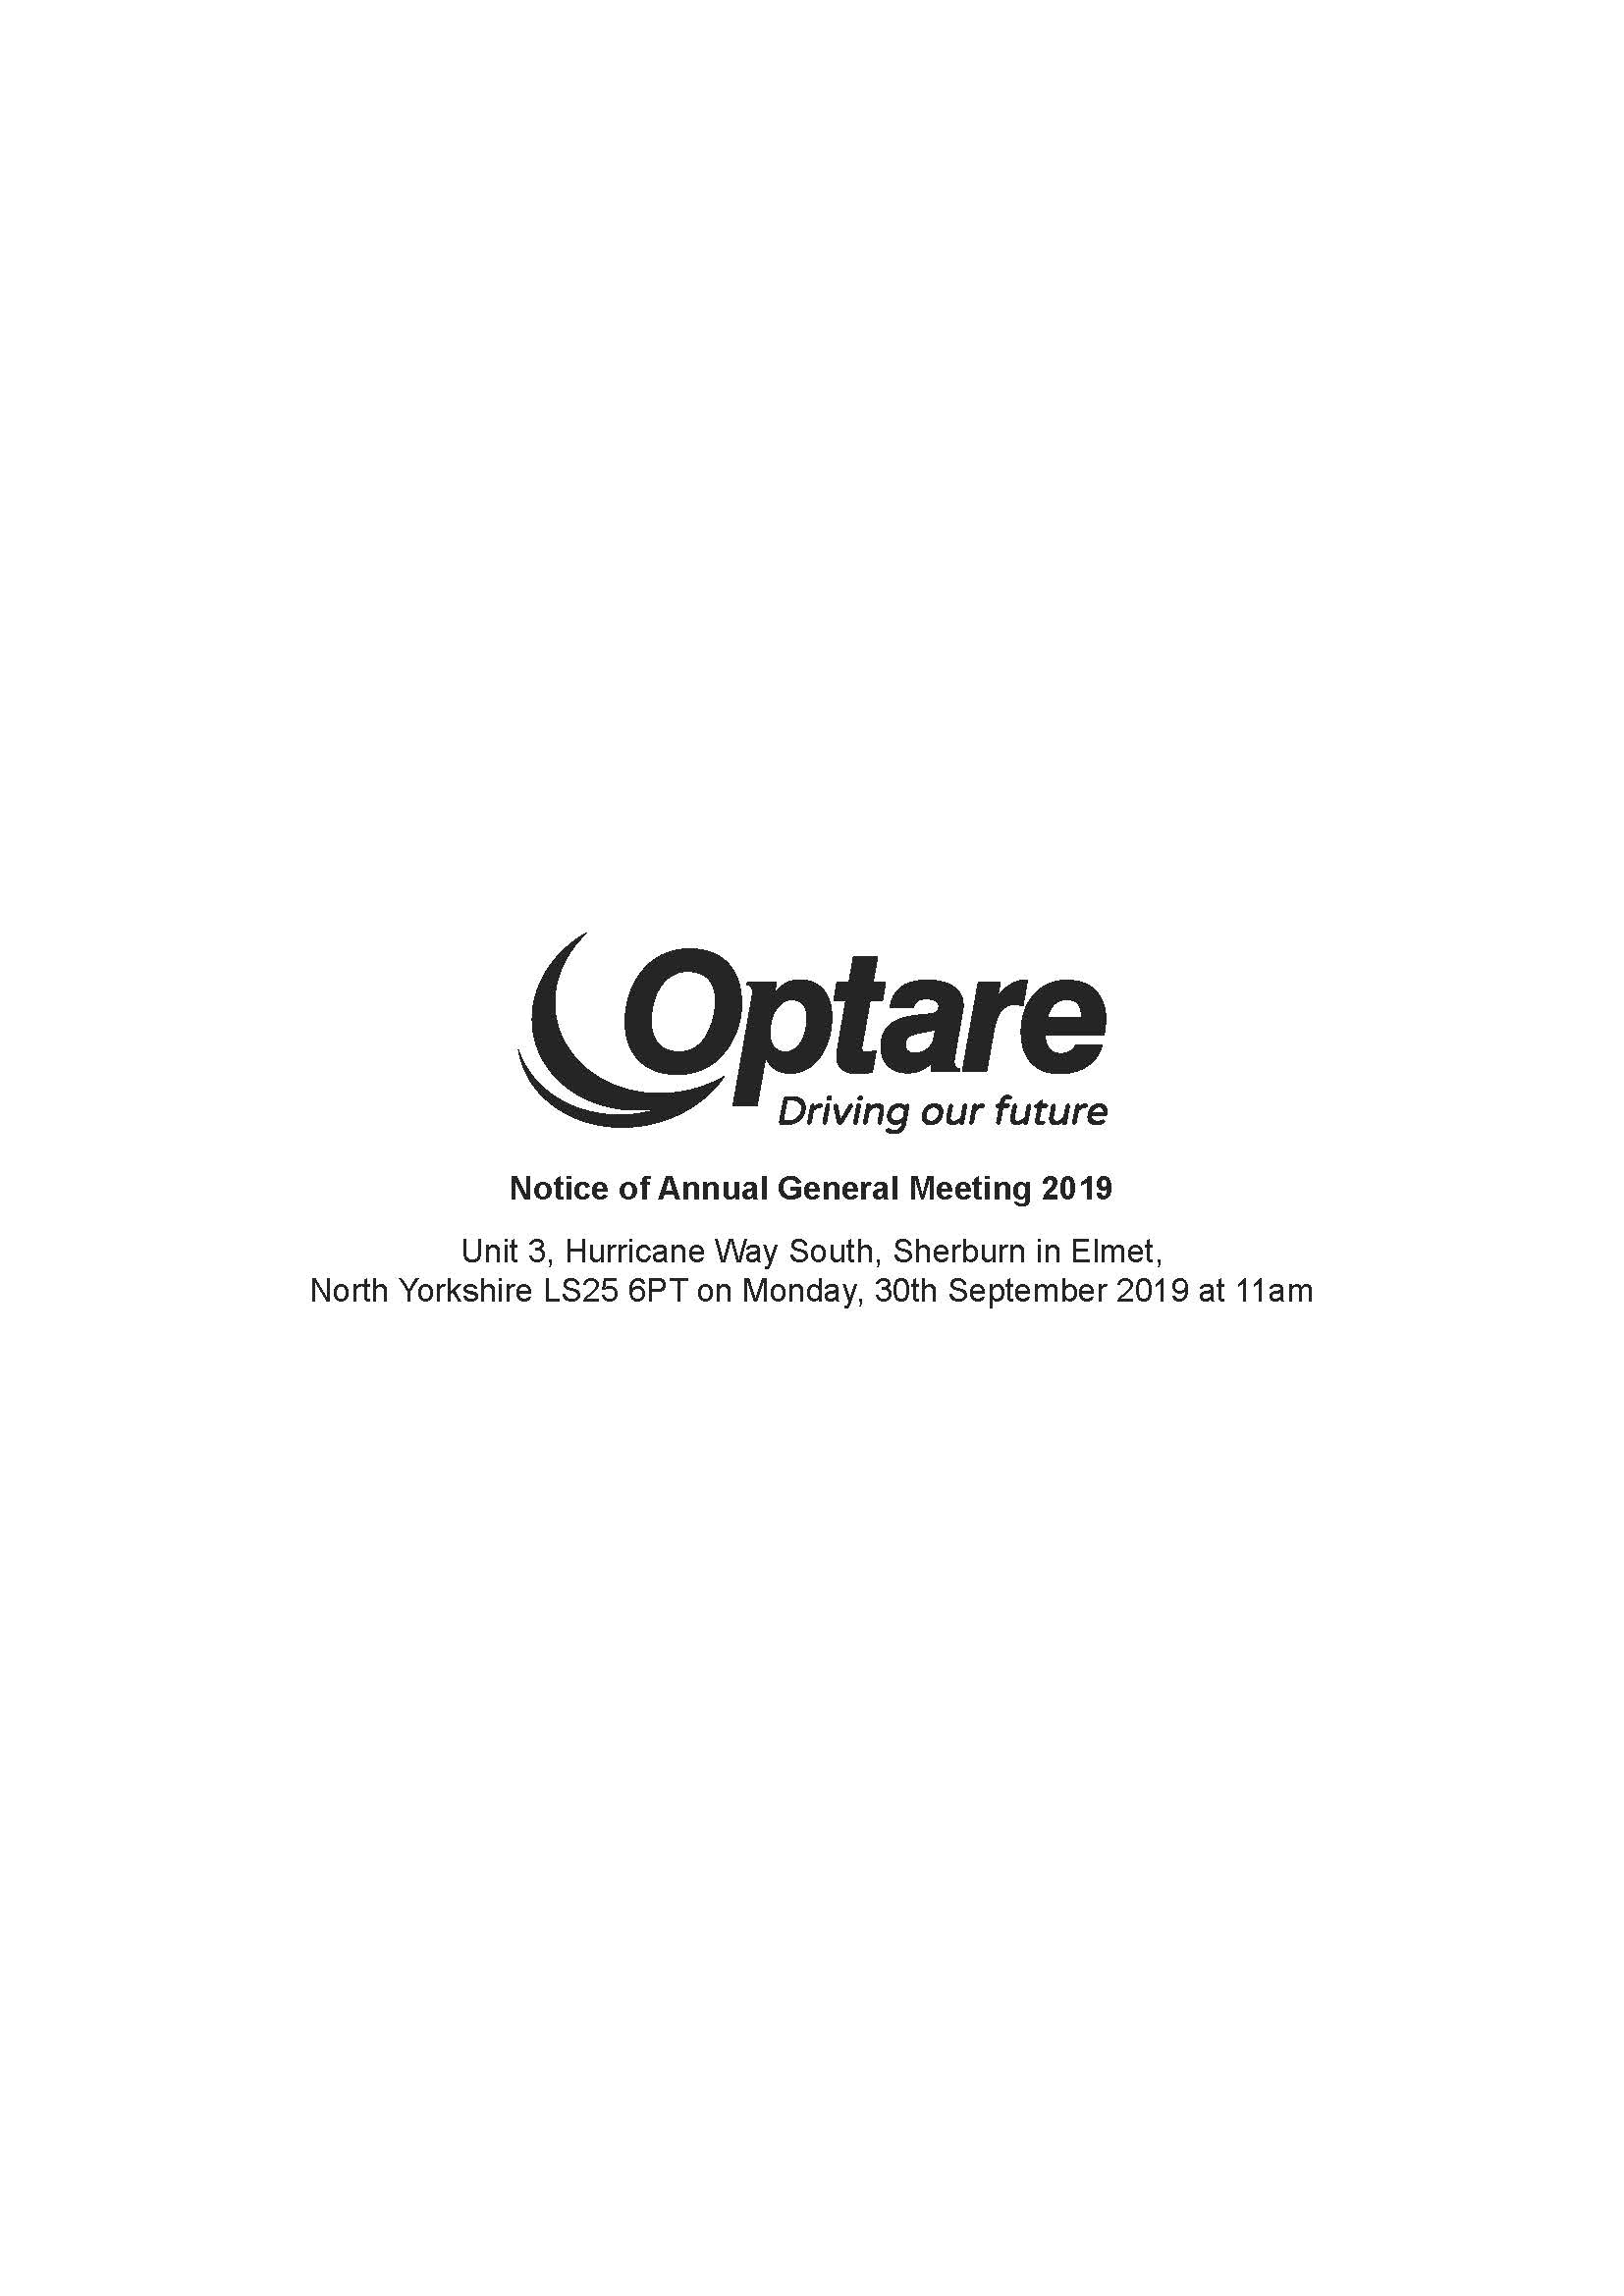 Optare plc Notice of Annual General Meeting 2019_Page_1.jpg